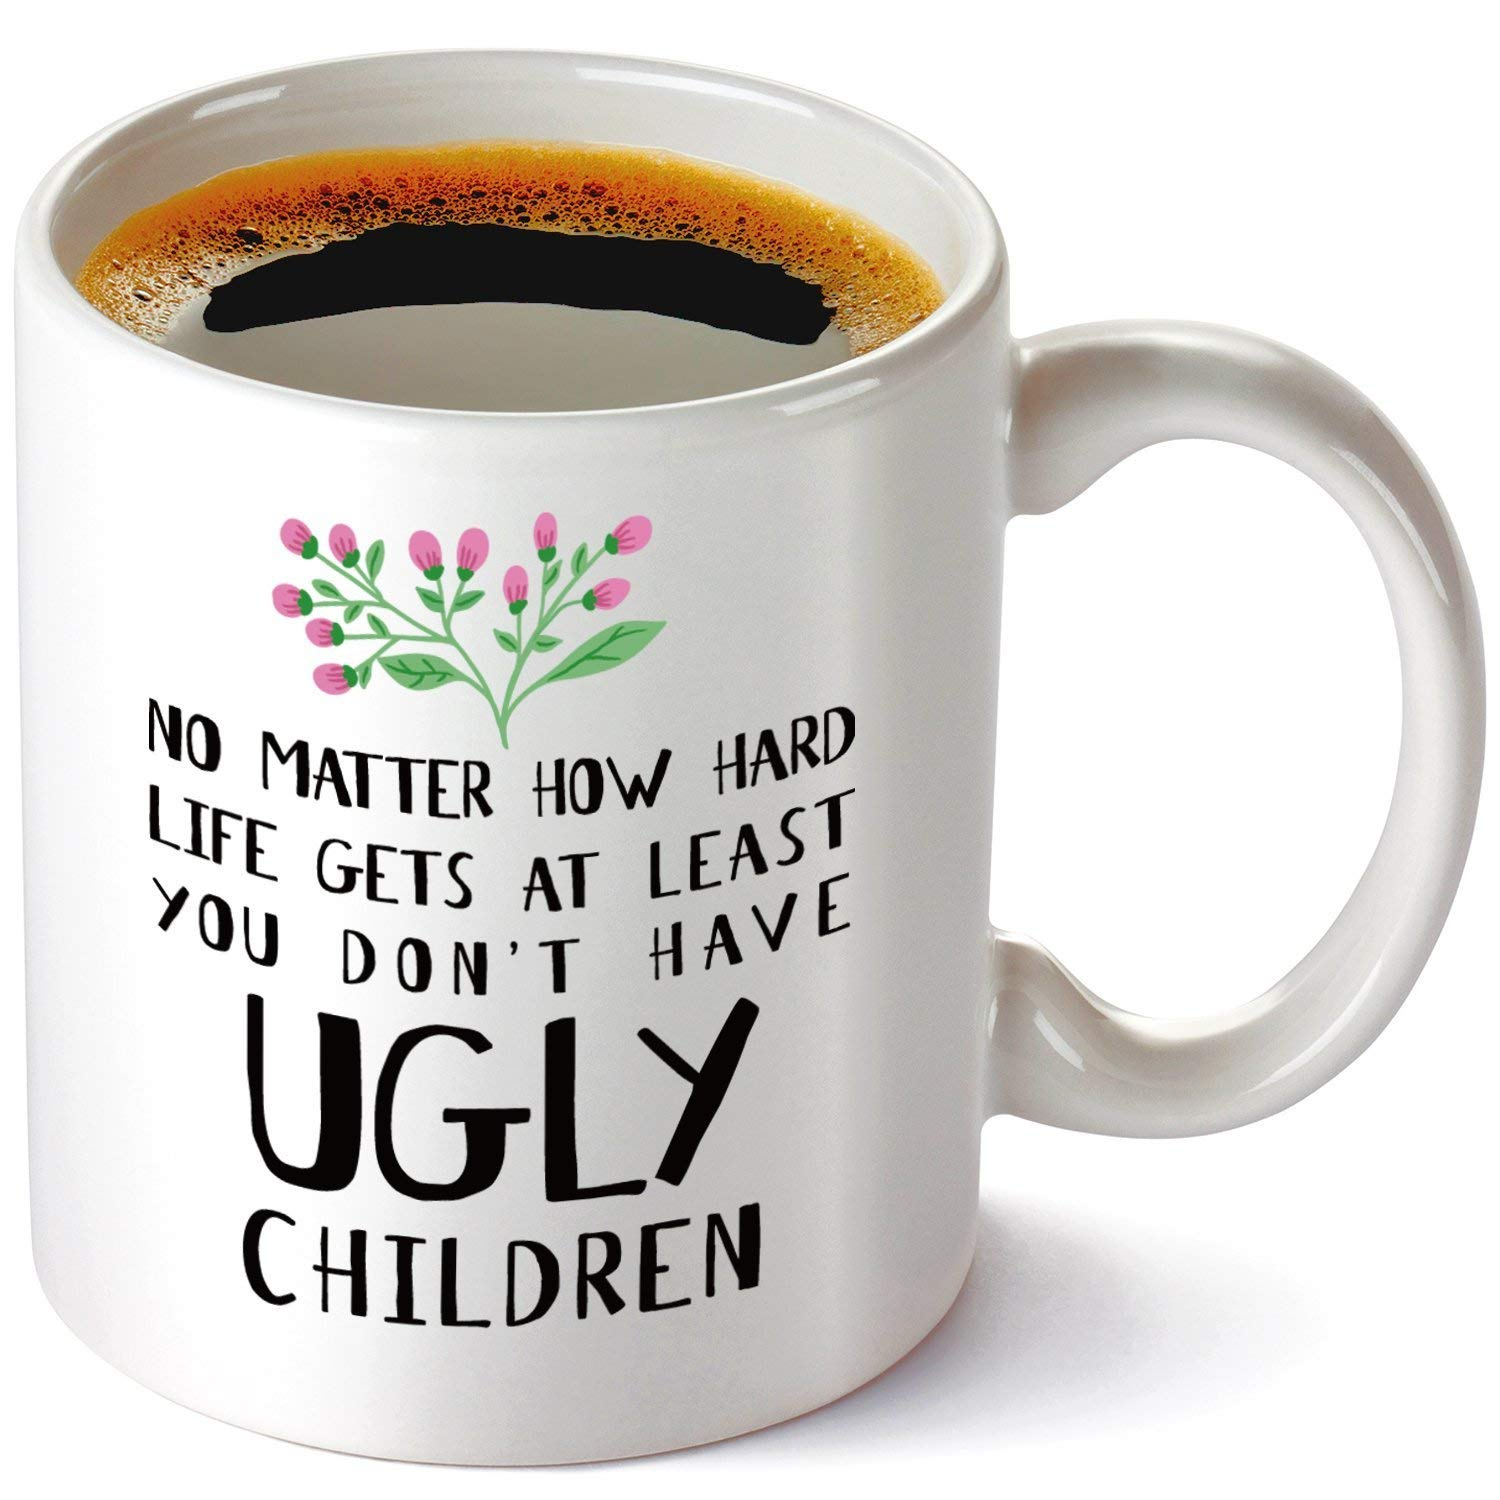 No Matter How Hard Life Gets At Least You Don't Have Ugly Children Coffee Mug Set 11oz,Funny Gift for Mom,Dad,Grandma,Grandpa Birthday,Christmas,Father's Day,Mother's Day.